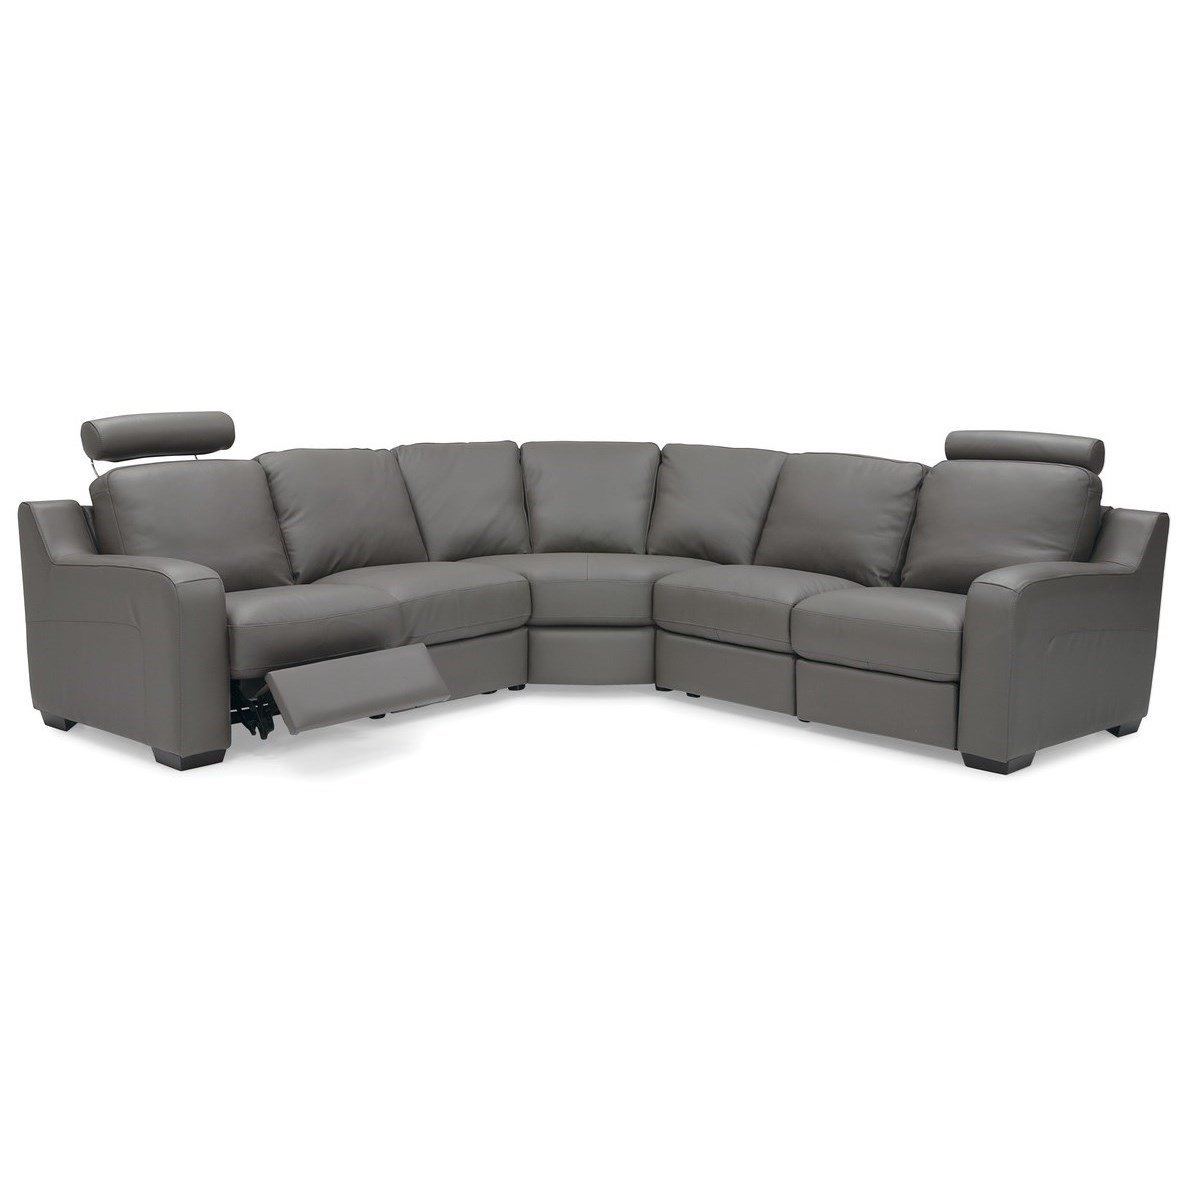 5-Seat Reclining Sectional Sofa